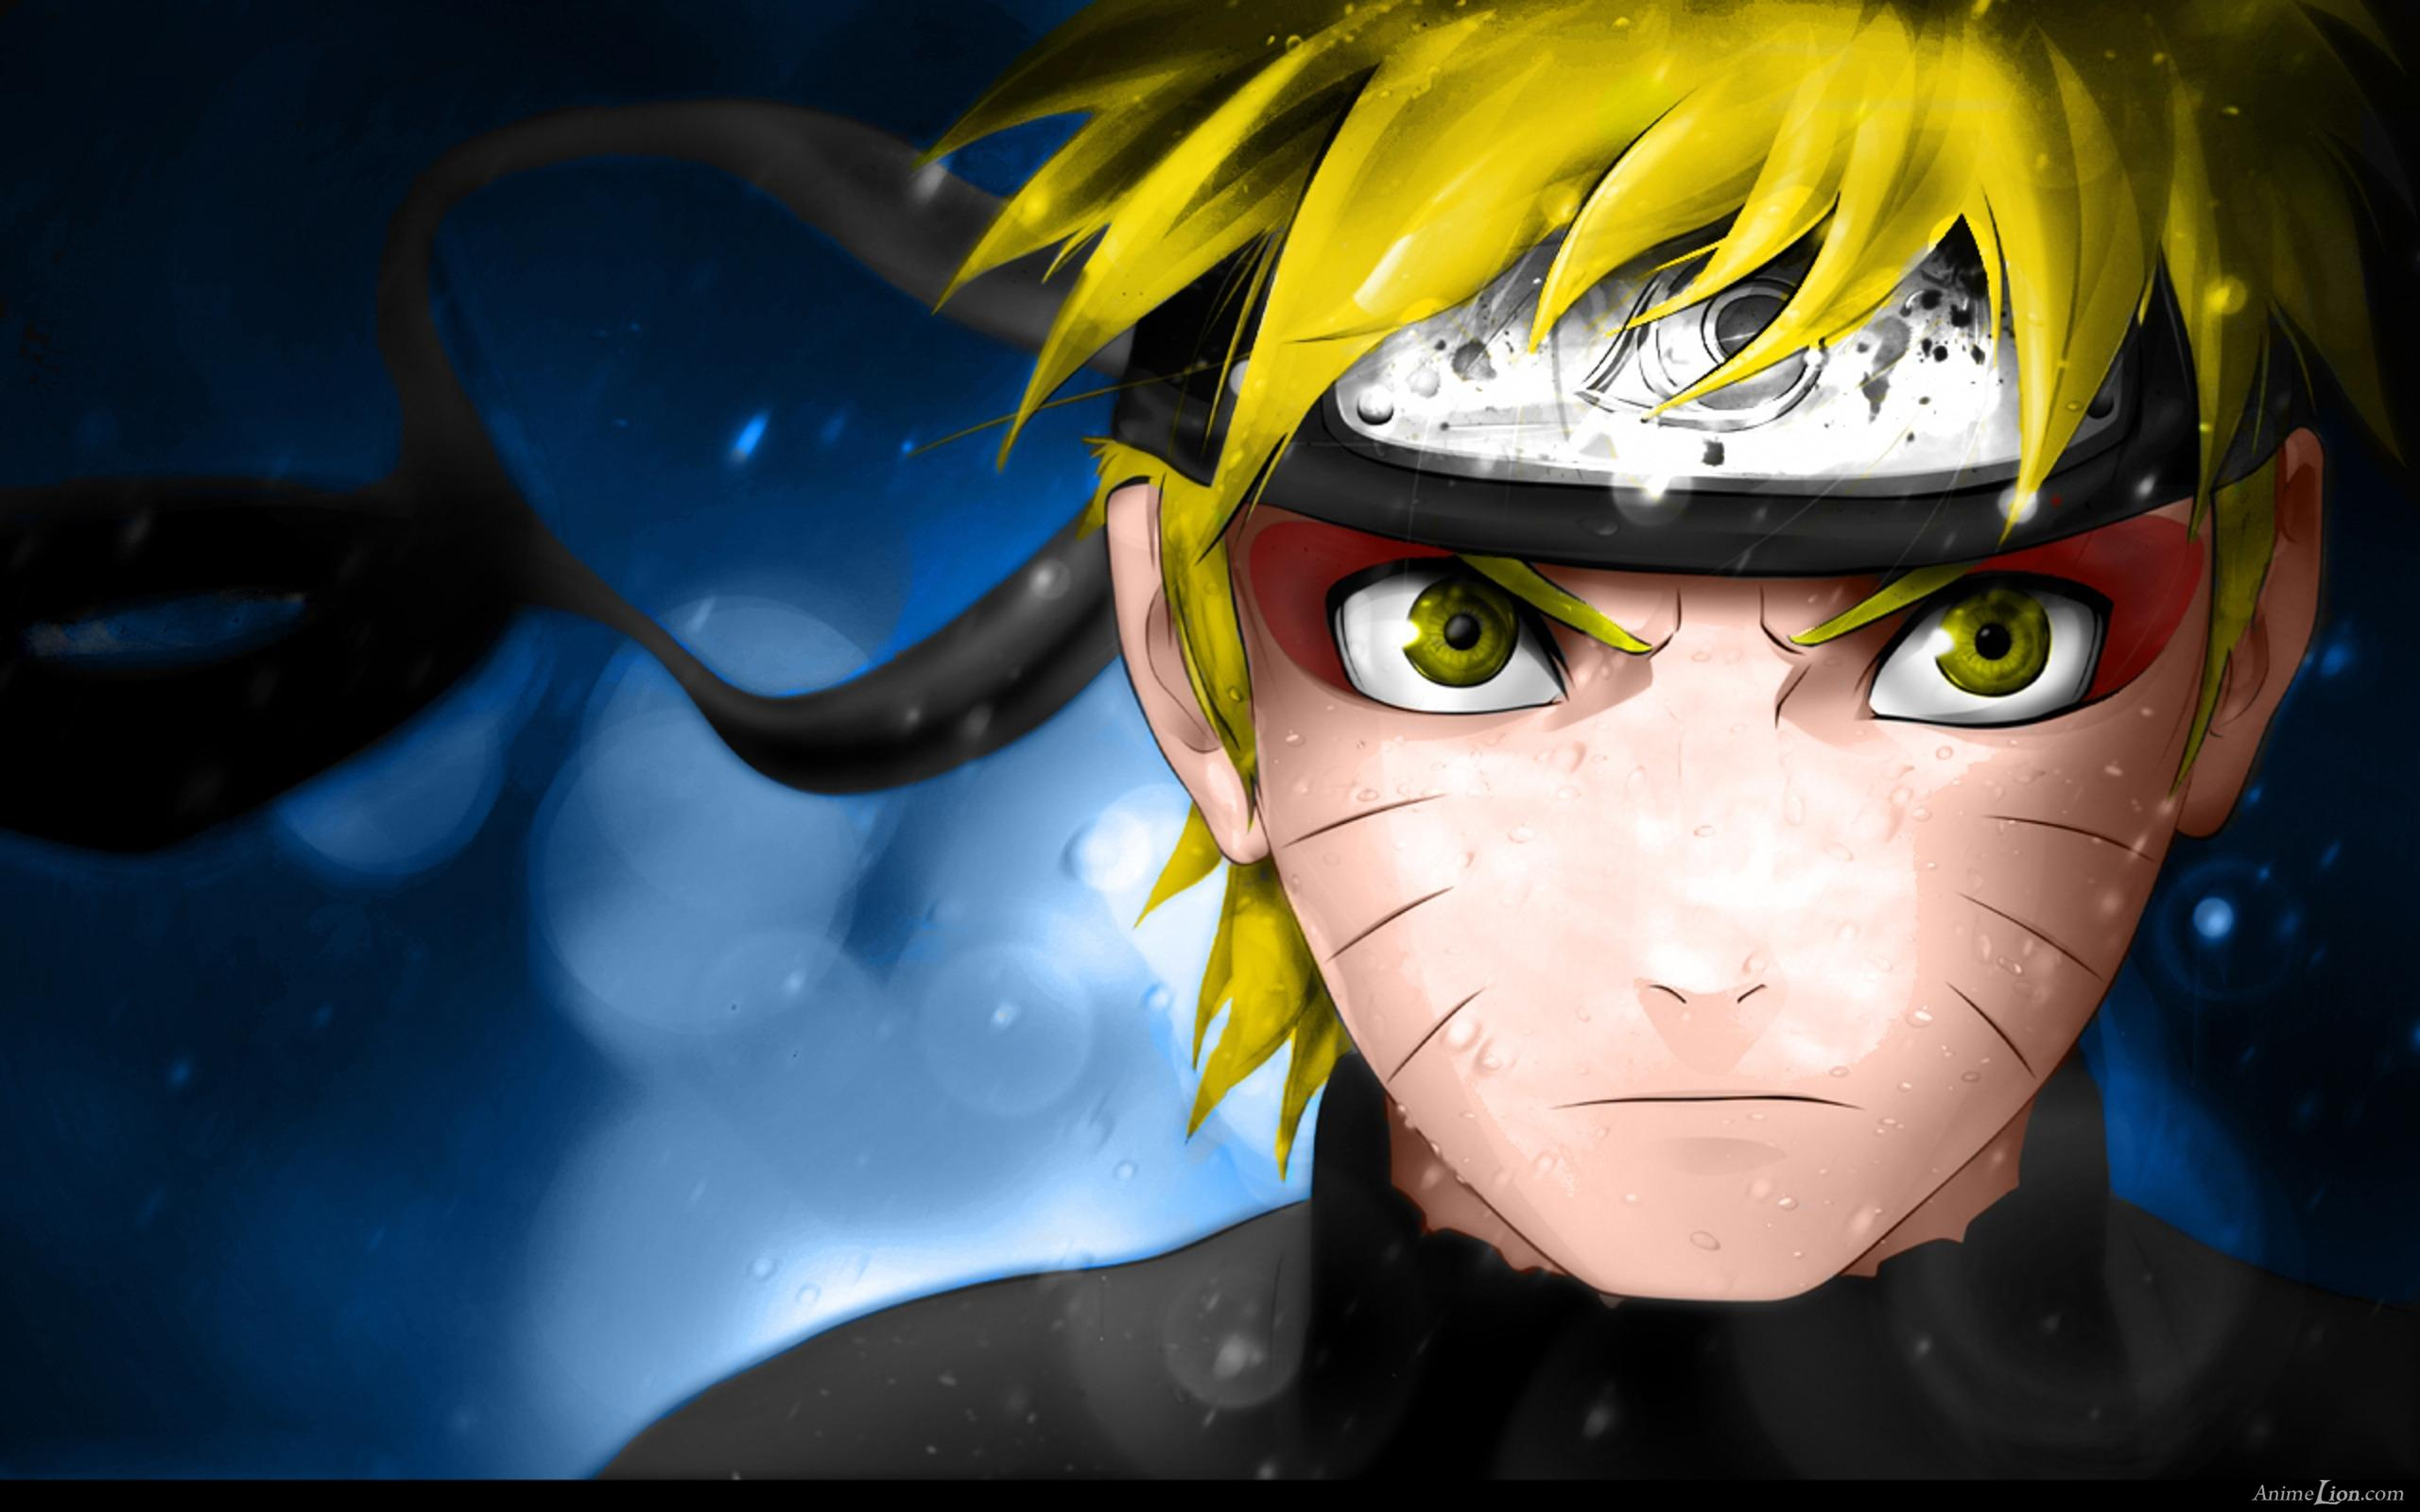 Personnages Naruto : niveau expert (3)